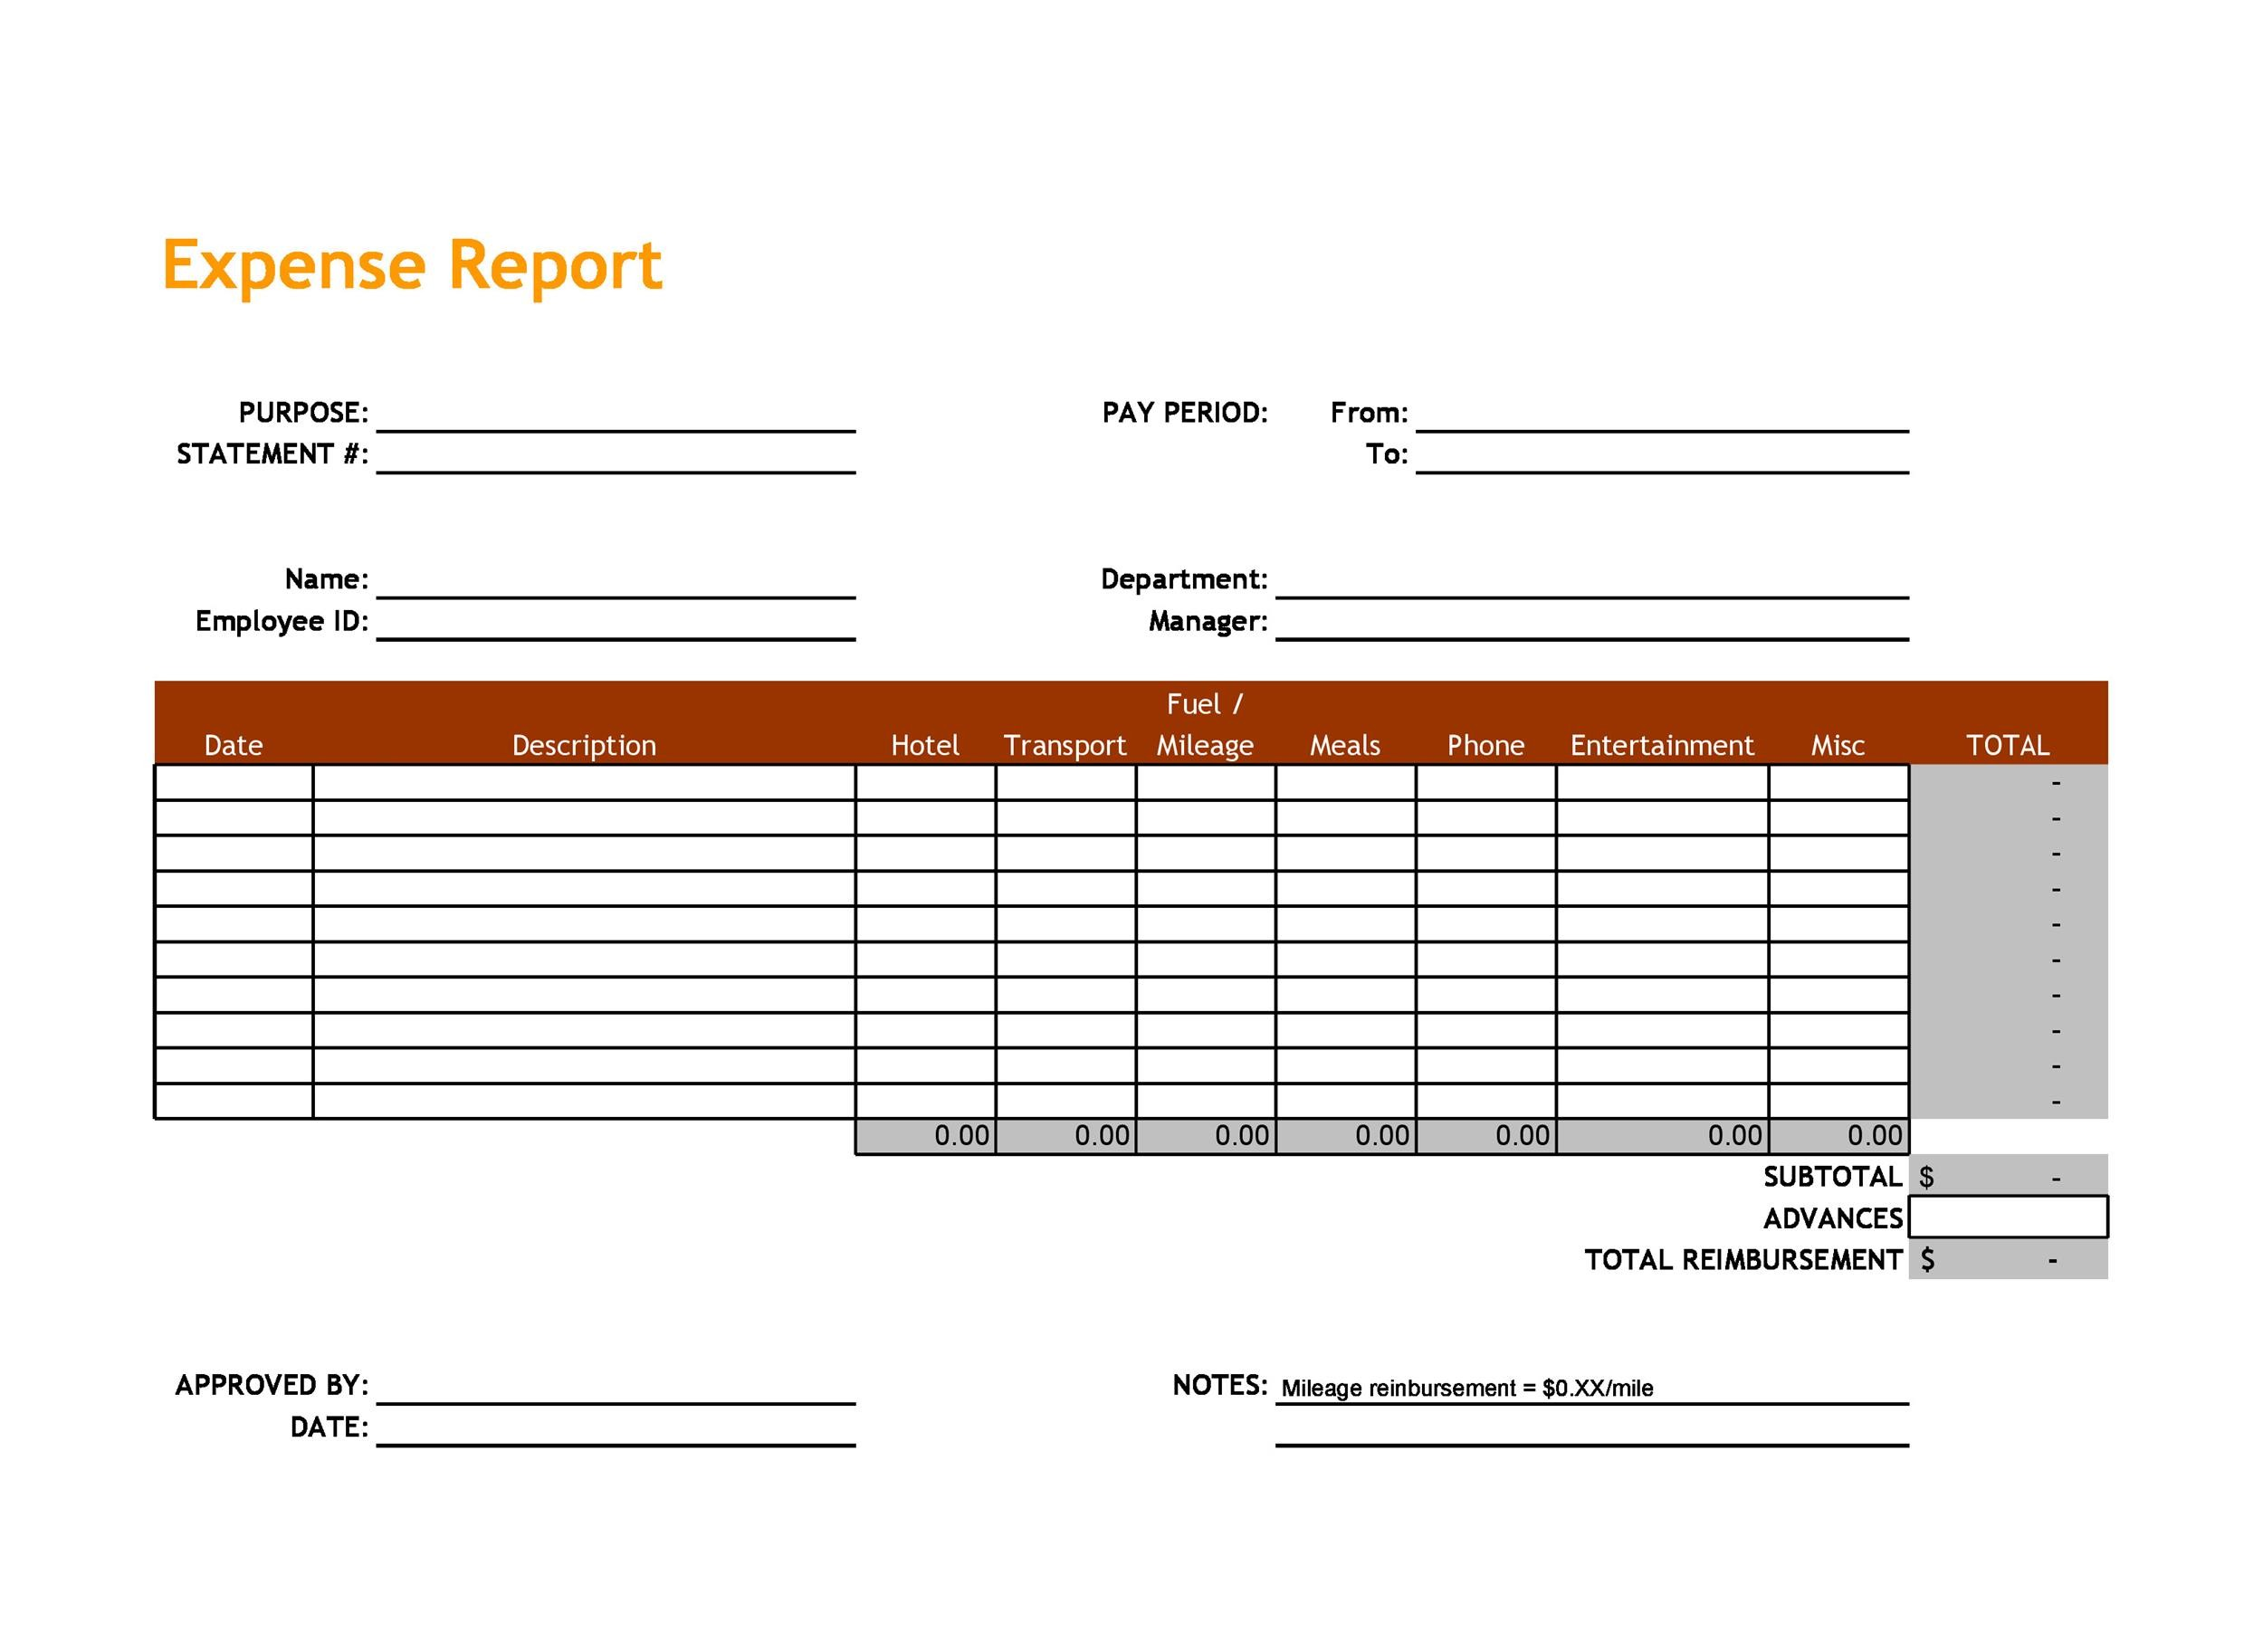 40+ Expense Report Templates to Help you Save Money - Template Lab - expense report template free